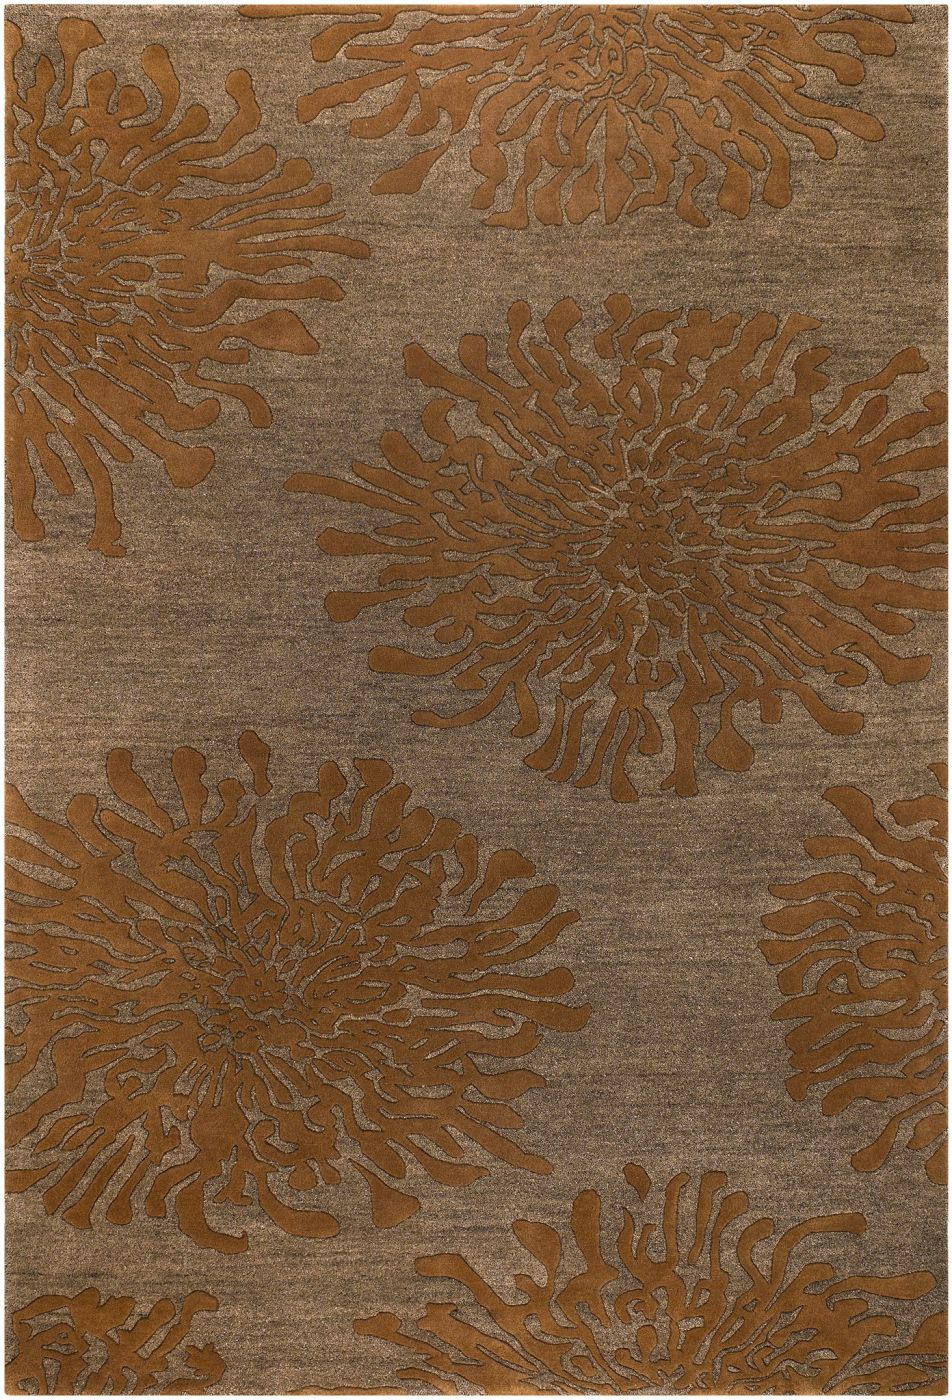 surya blowout sale up to 70 off bst495 23 bombay floral and paisley area rug orange brown. Black Bedroom Furniture Sets. Home Design Ideas